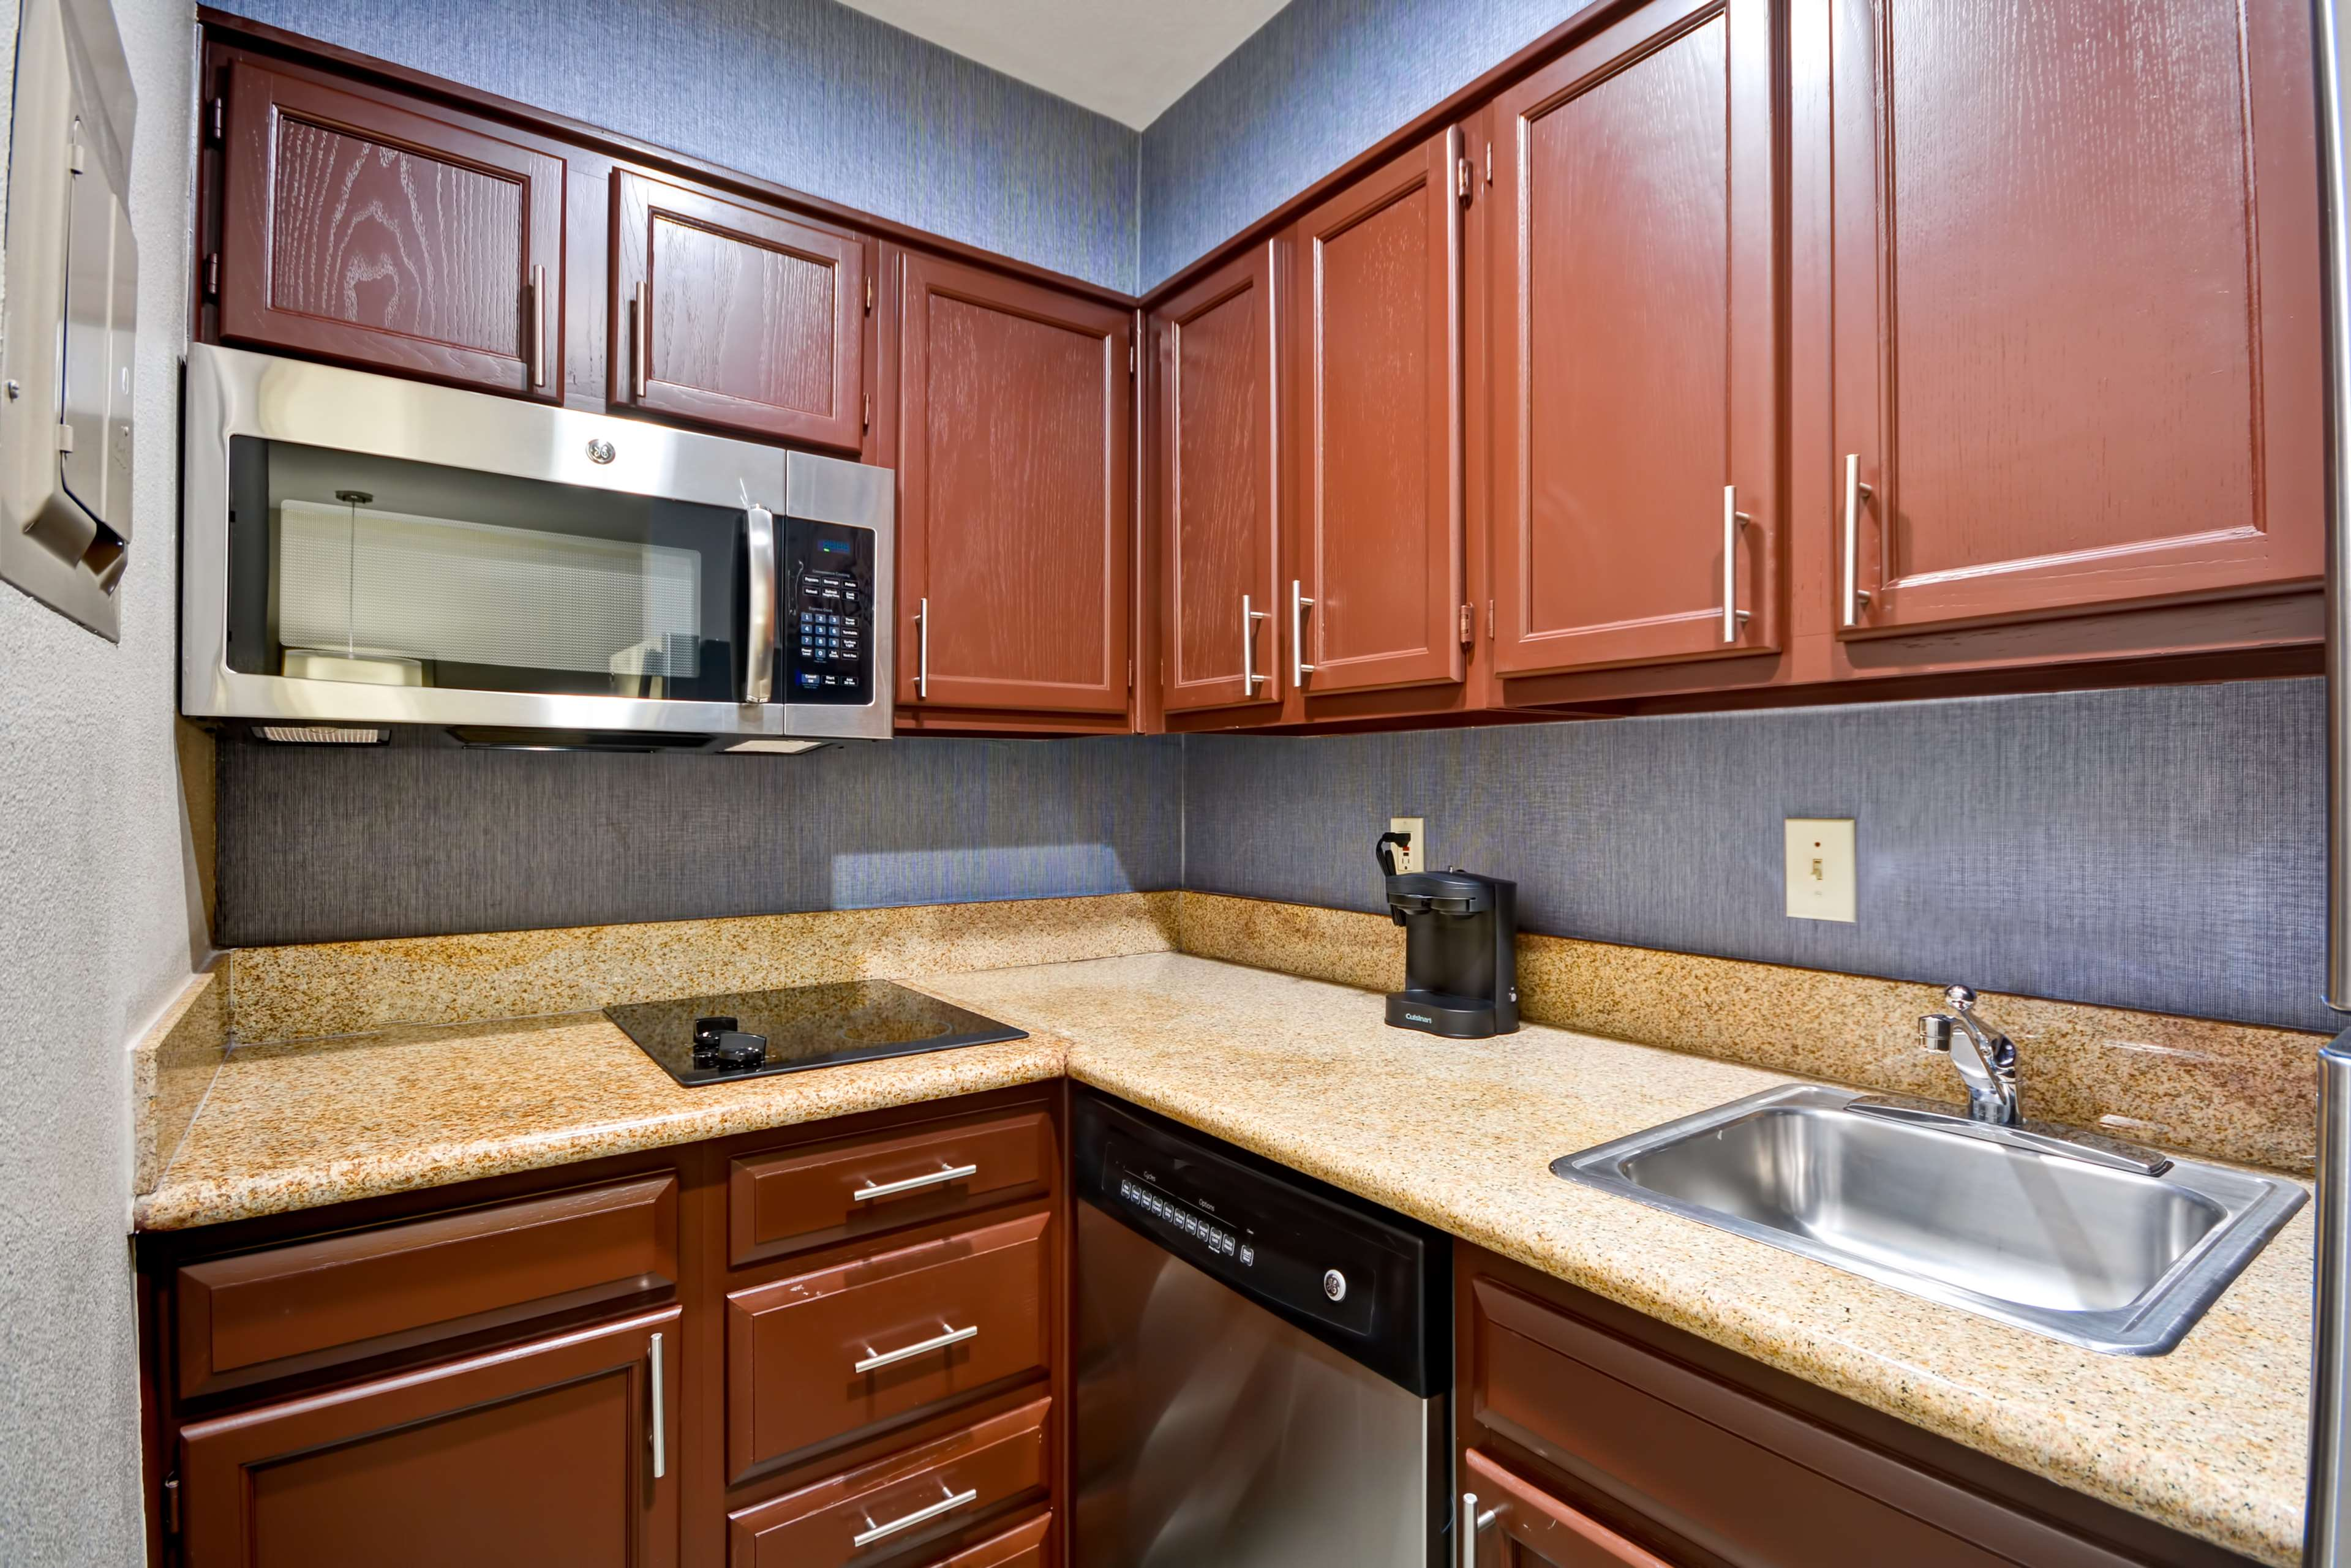 Homewood Suites by Hilton Dallas-Lewisville image 31